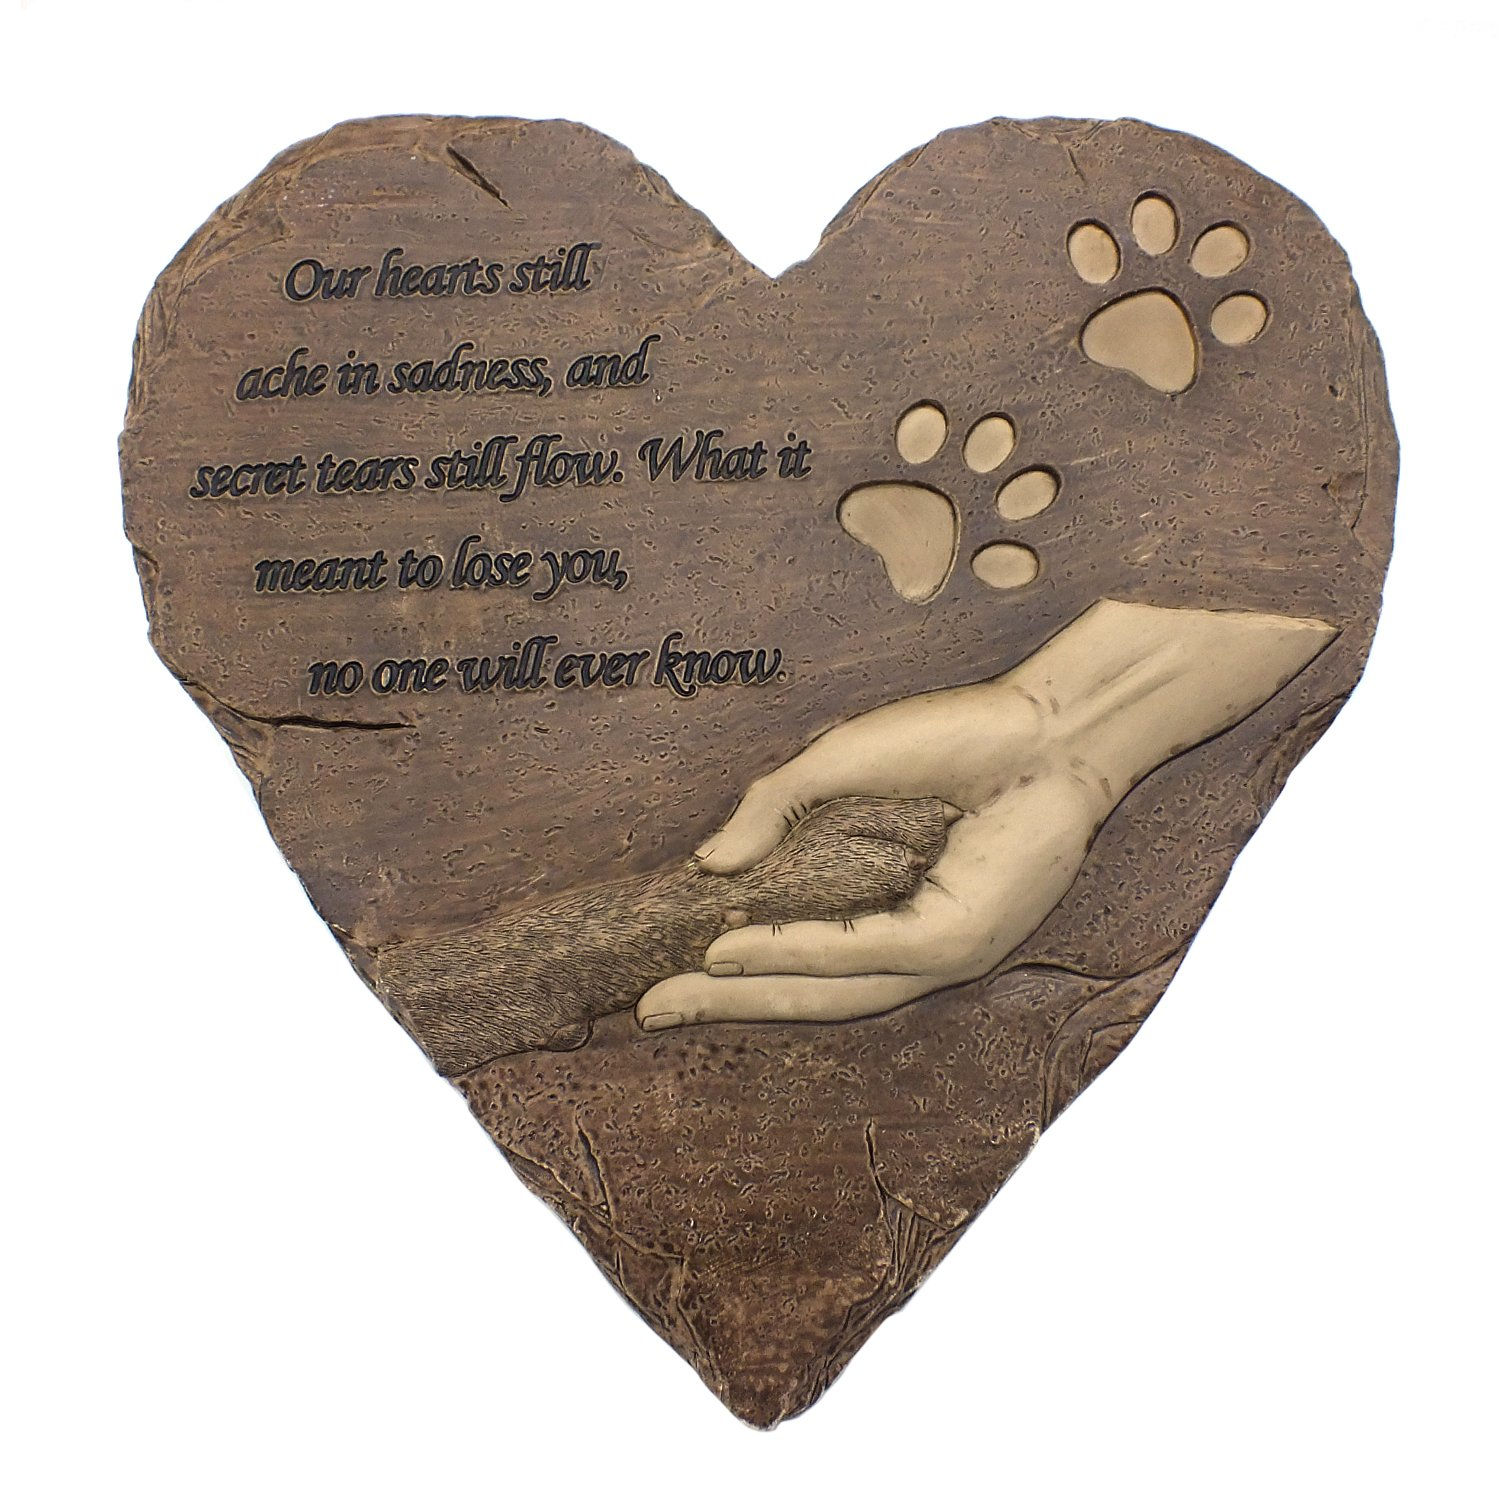 izery Pet Memorial Stones, Engraved Memorial Small Heart Garden Decoration Stone, Garden Stepping Stone - Pet Footprint, for Garden Decor Dog or Cat, Garden Backyard Marker Pets Grave Tombstone